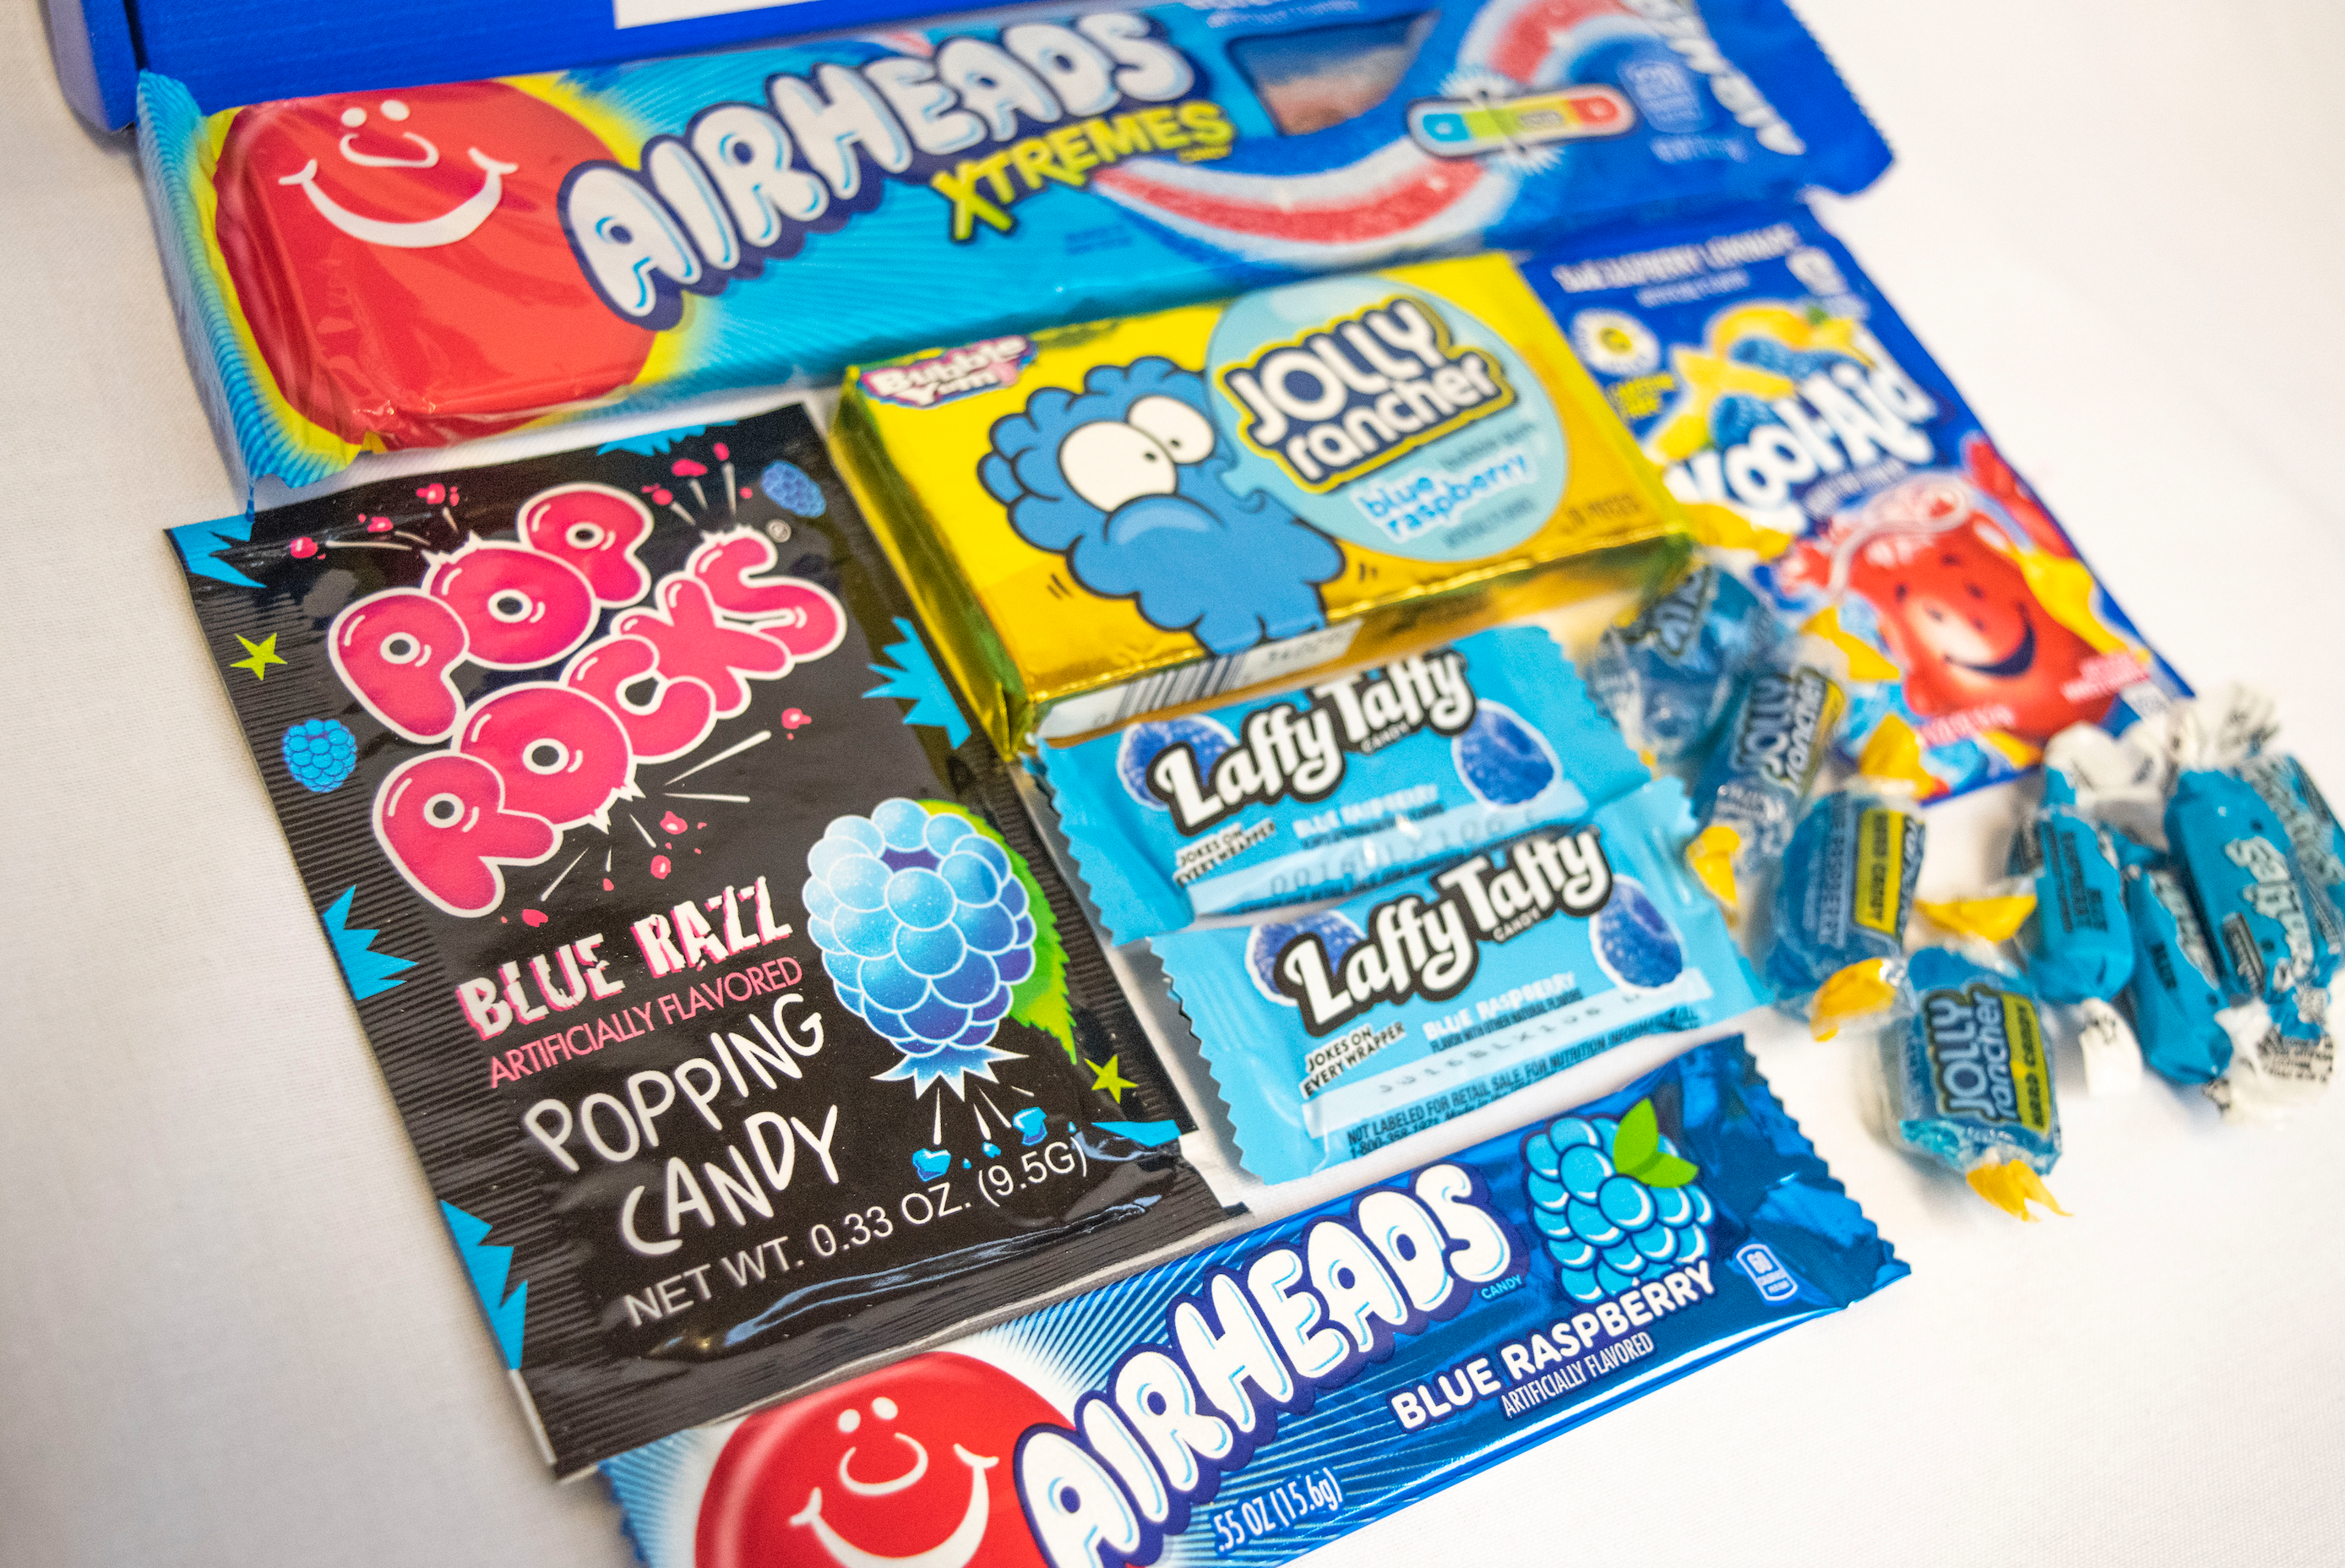 Honey, I Blue up the Kid!© Blue Raspberry Candy Letterbox Gift Hamper